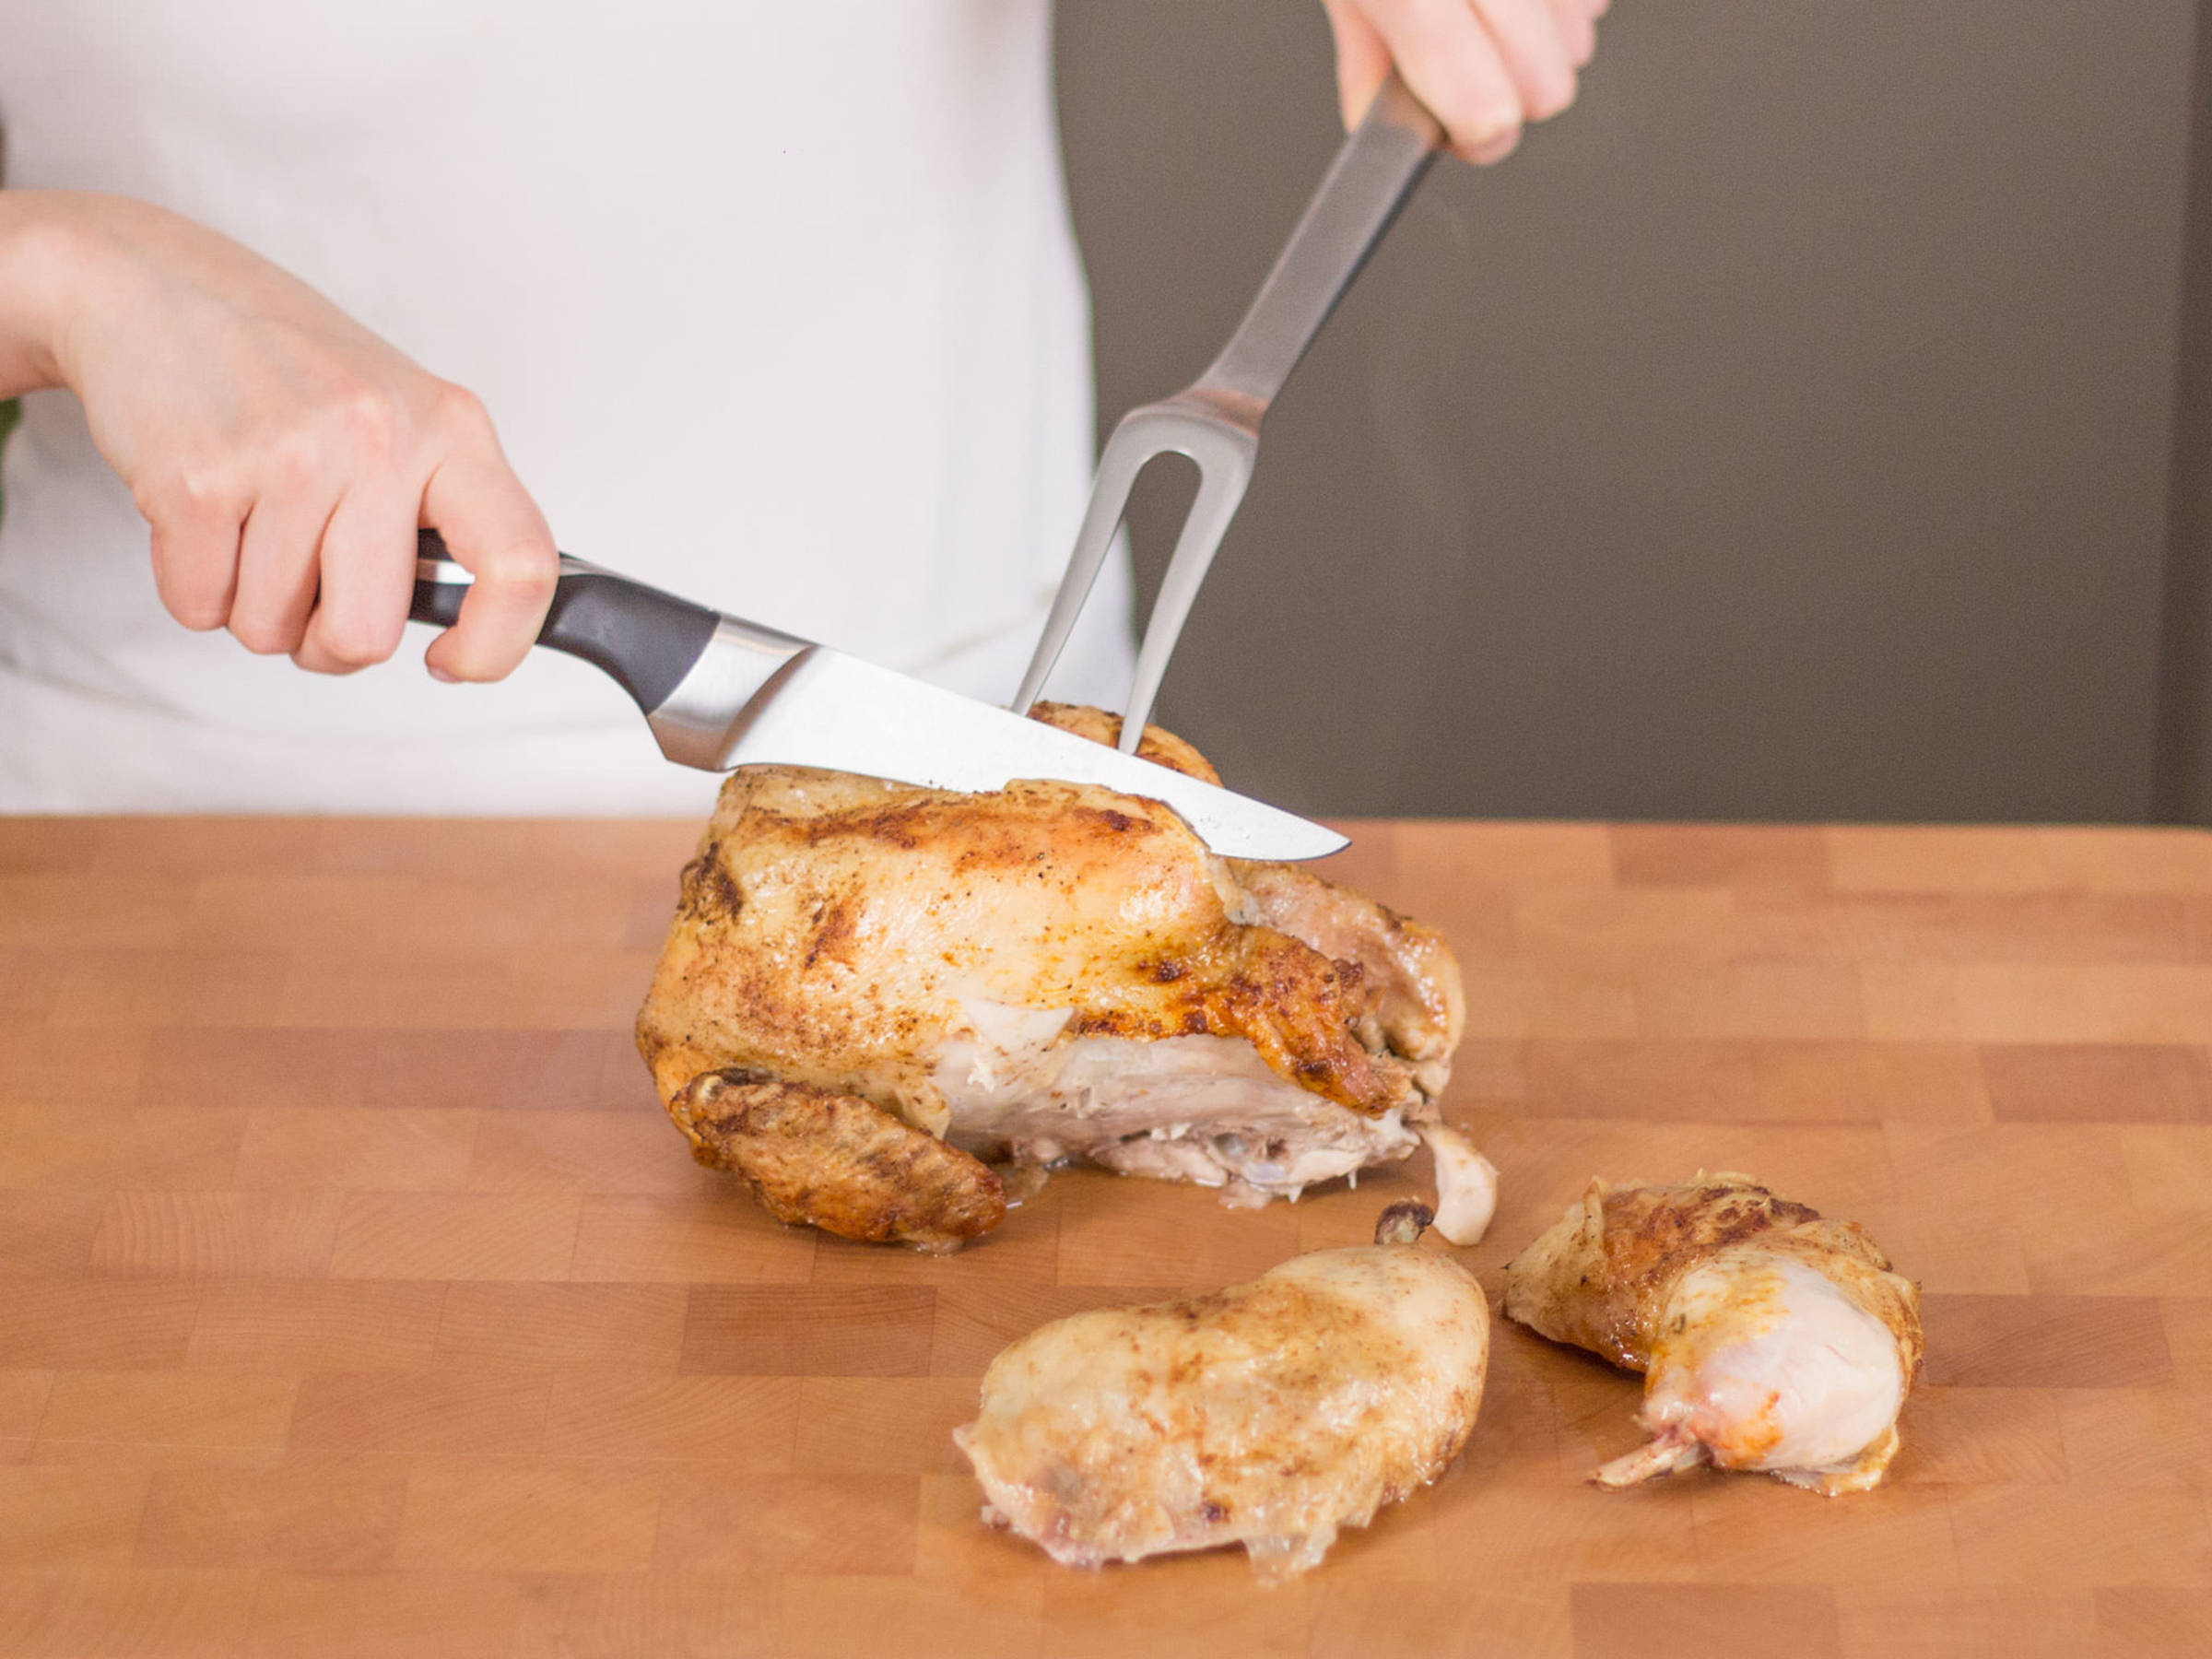 Remove from oven and let rest for approx. 5 - 10 min. Then, carve chicken into serving portions, as desired.